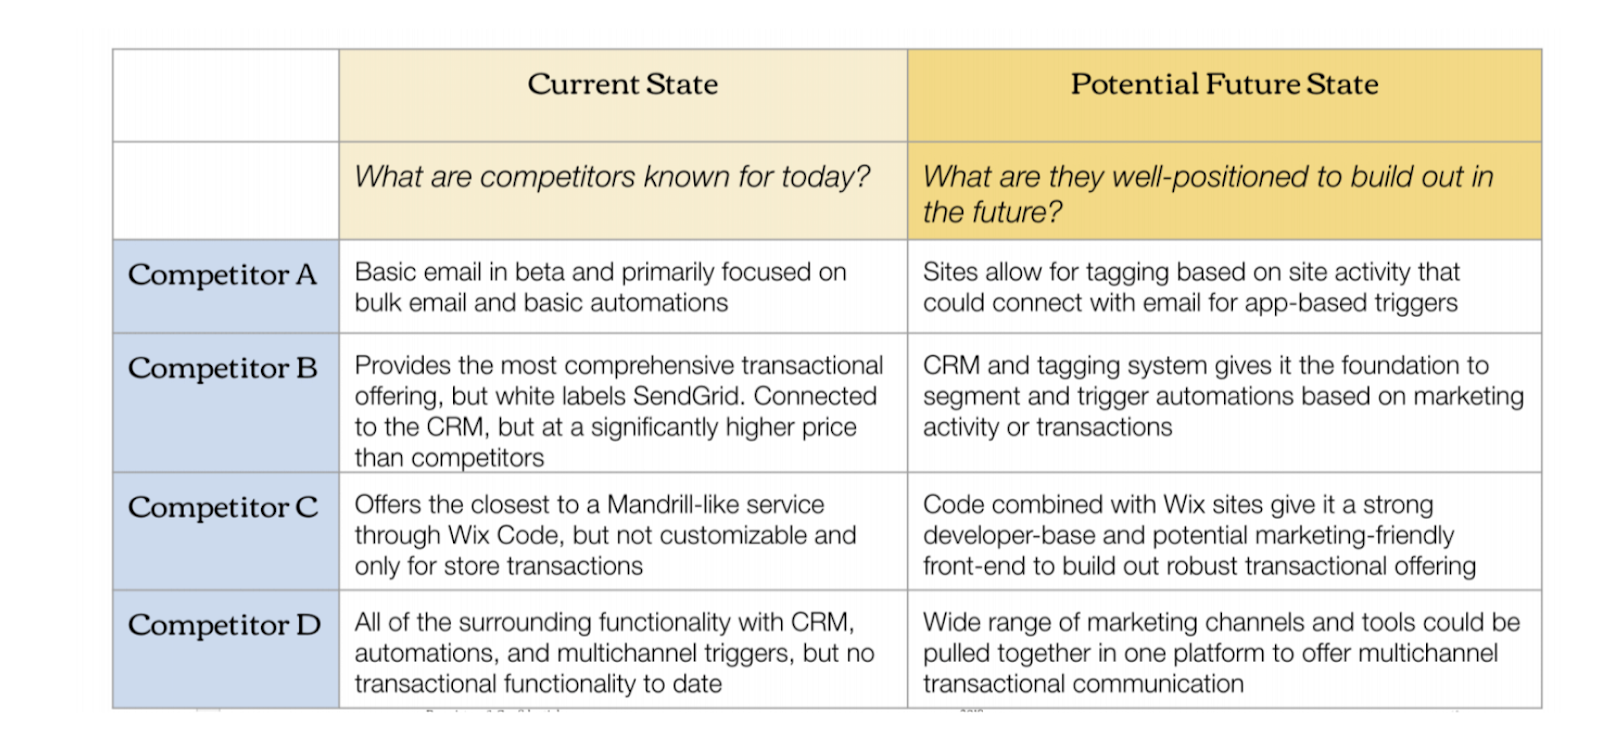 Become familiar with the current state of your competitors and their potential future state